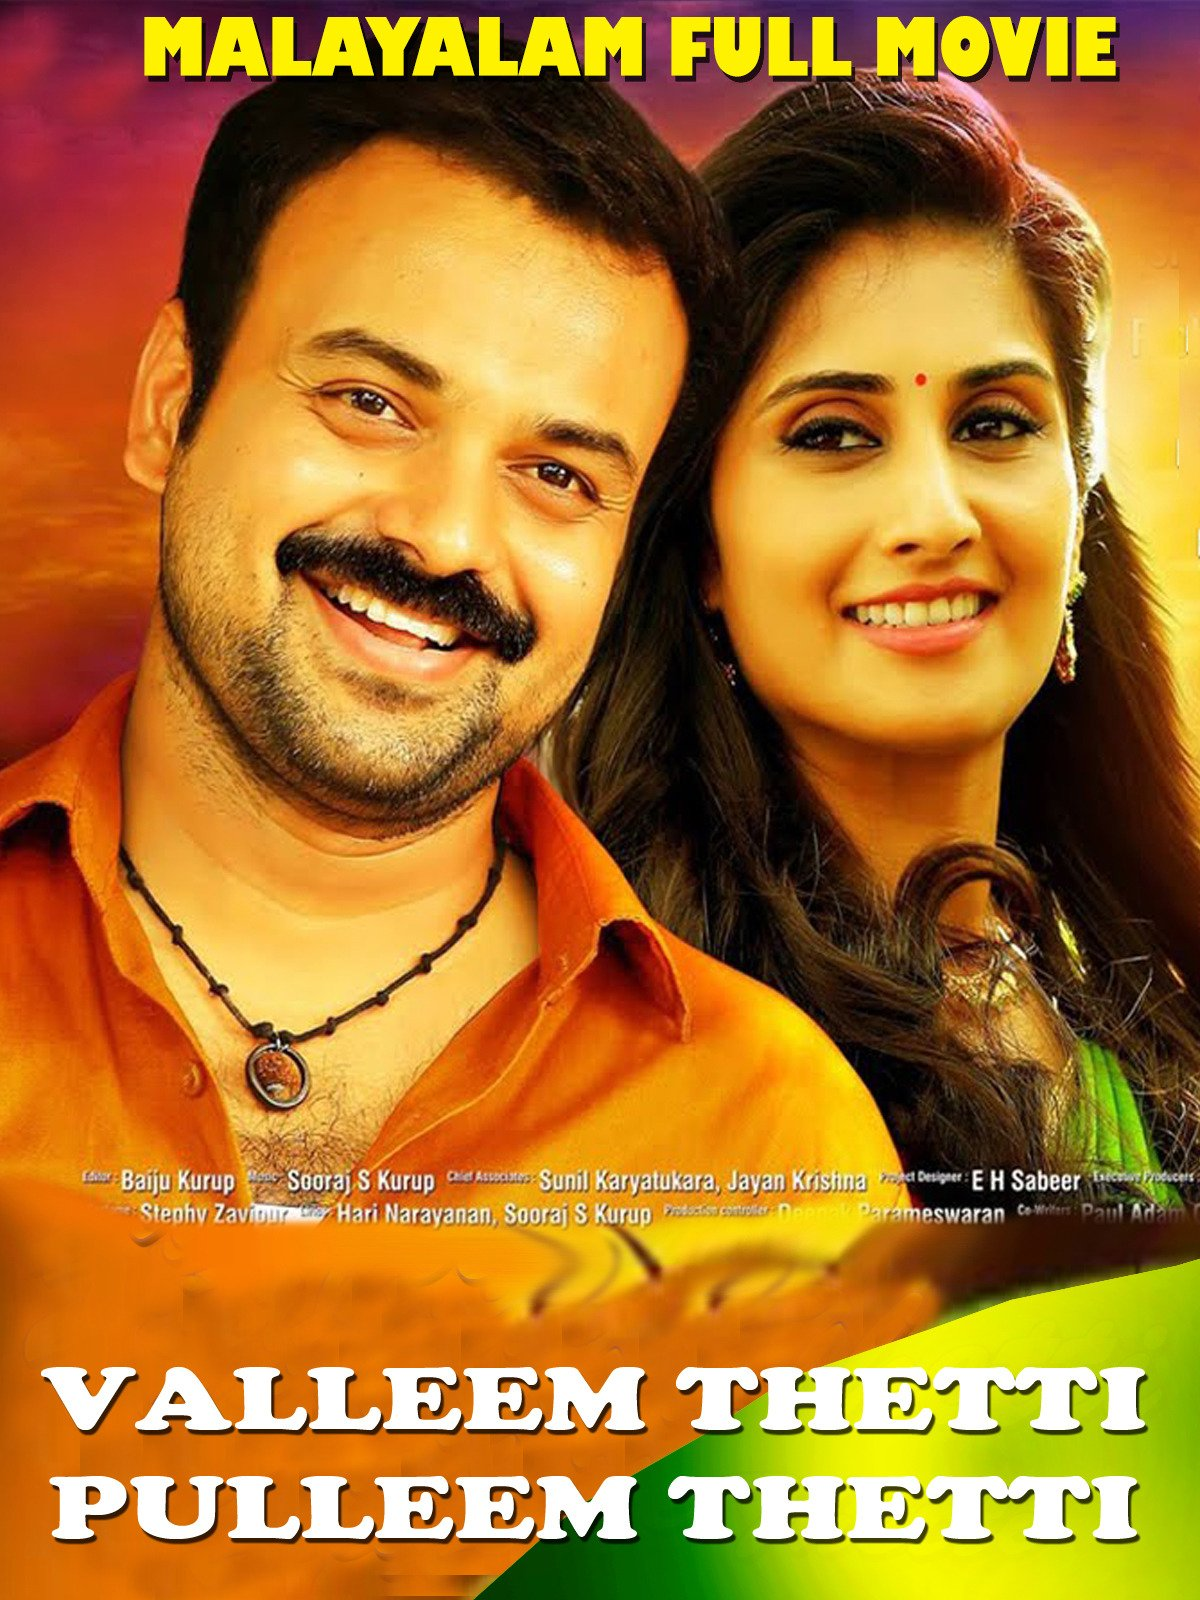 Malayalam Full Movie- Valleem Thetty Pulleem Thetty